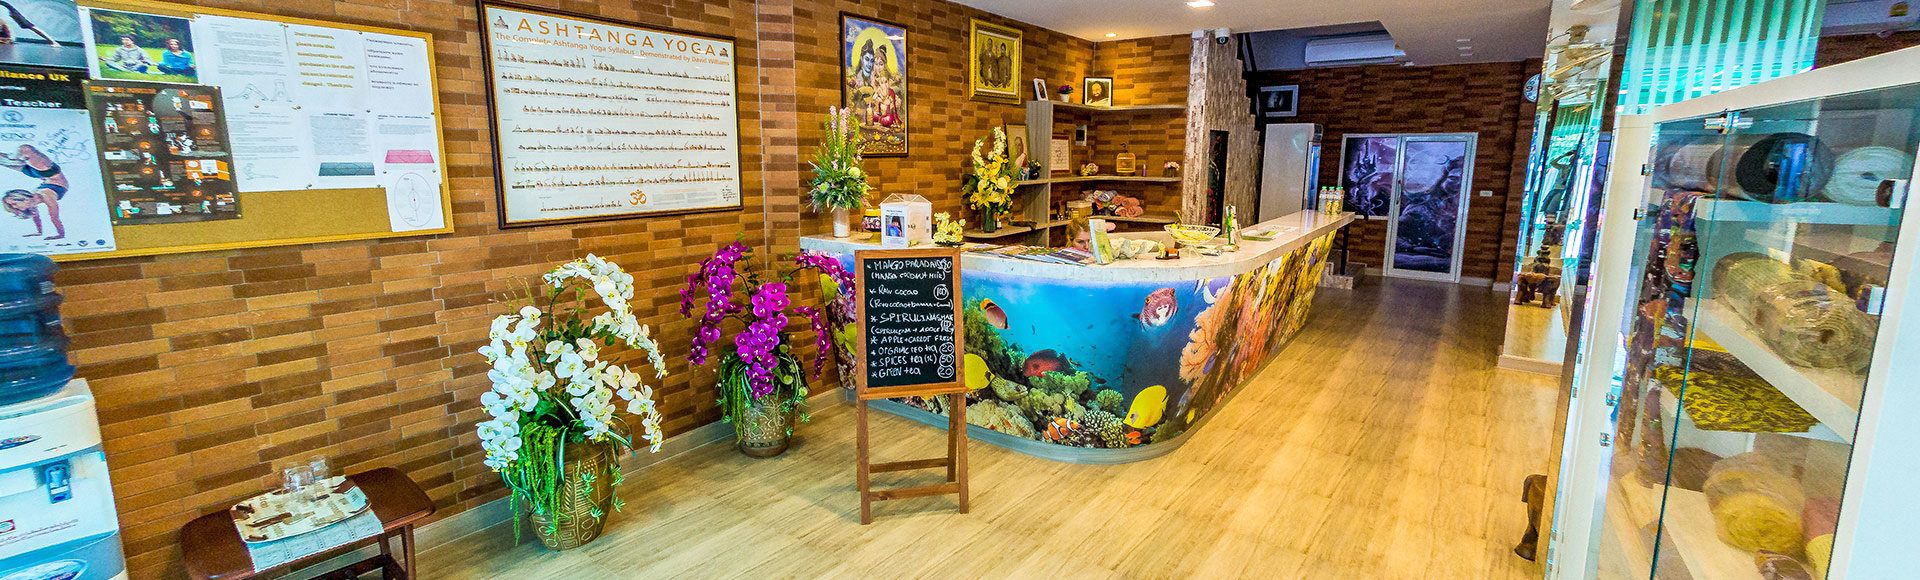 The first dedicated yoga store in Pattaya.